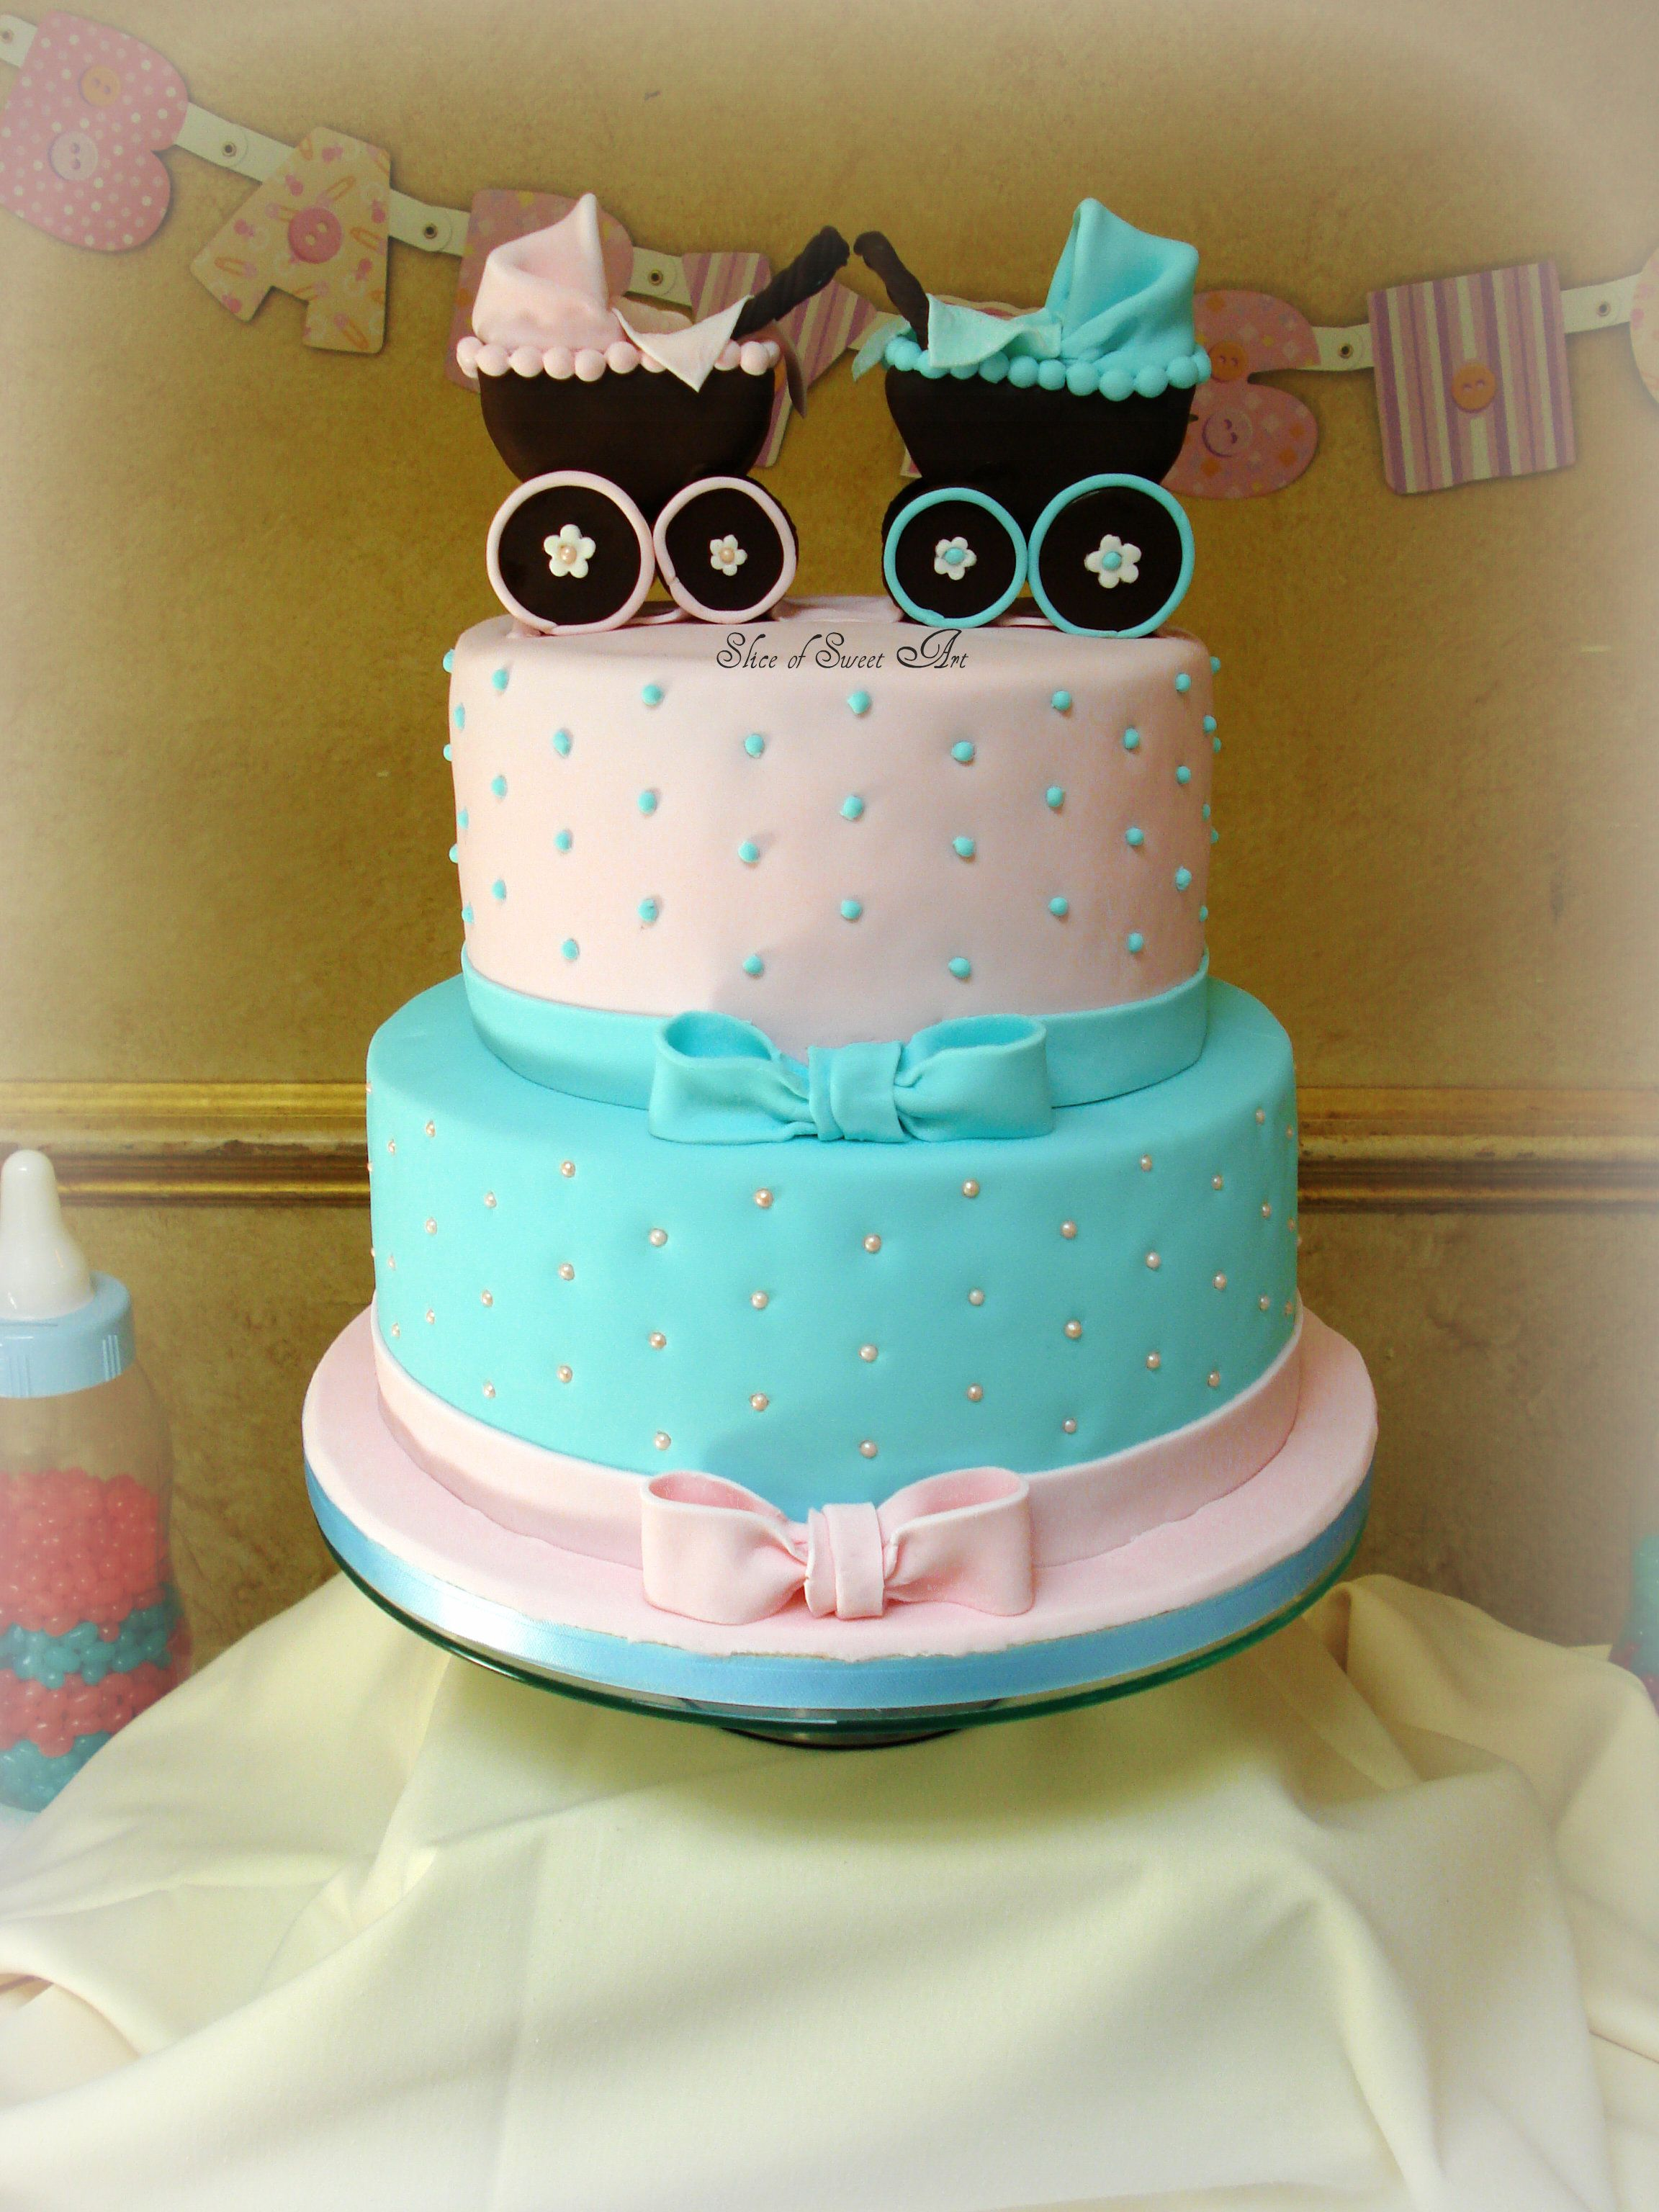 Pink & Blue Baby Shower Baby Shower cake for twins featuring